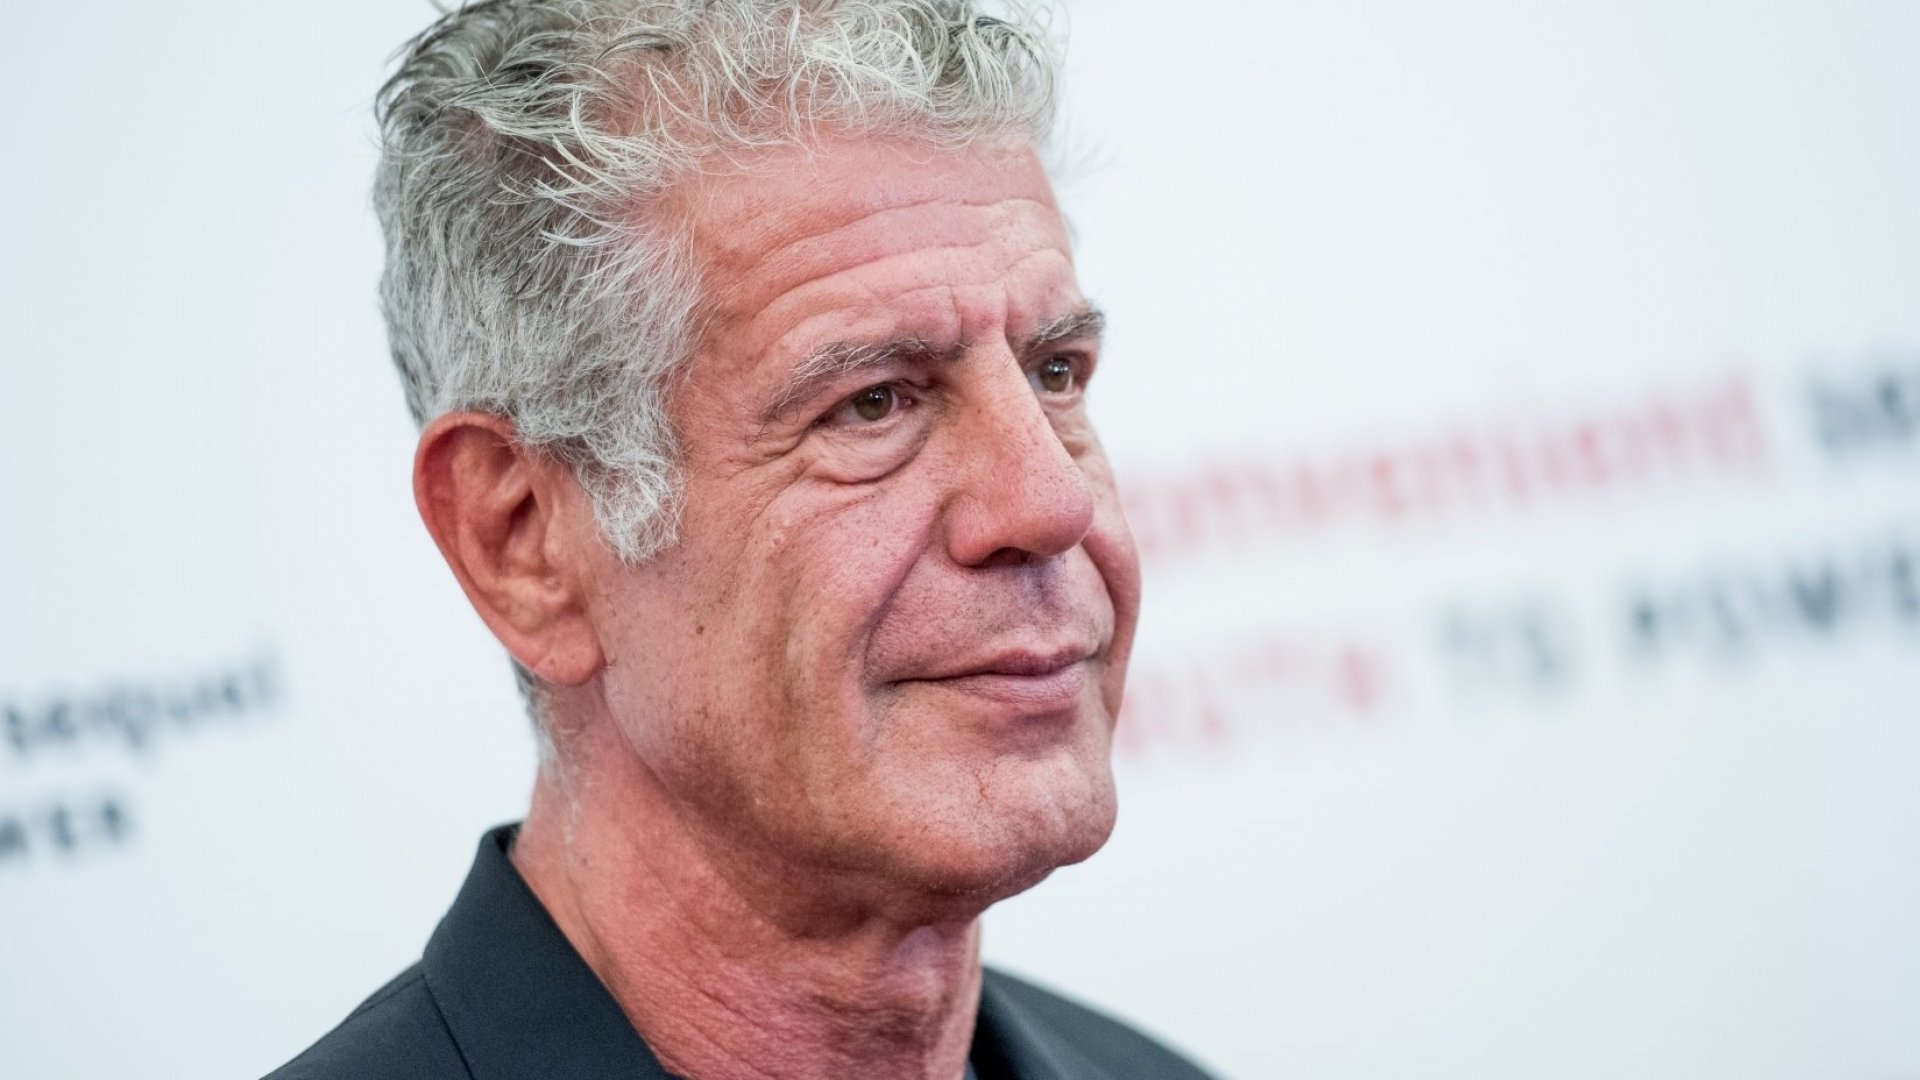 Anthony Bourdain, TV Star and Investor, Dead at 61